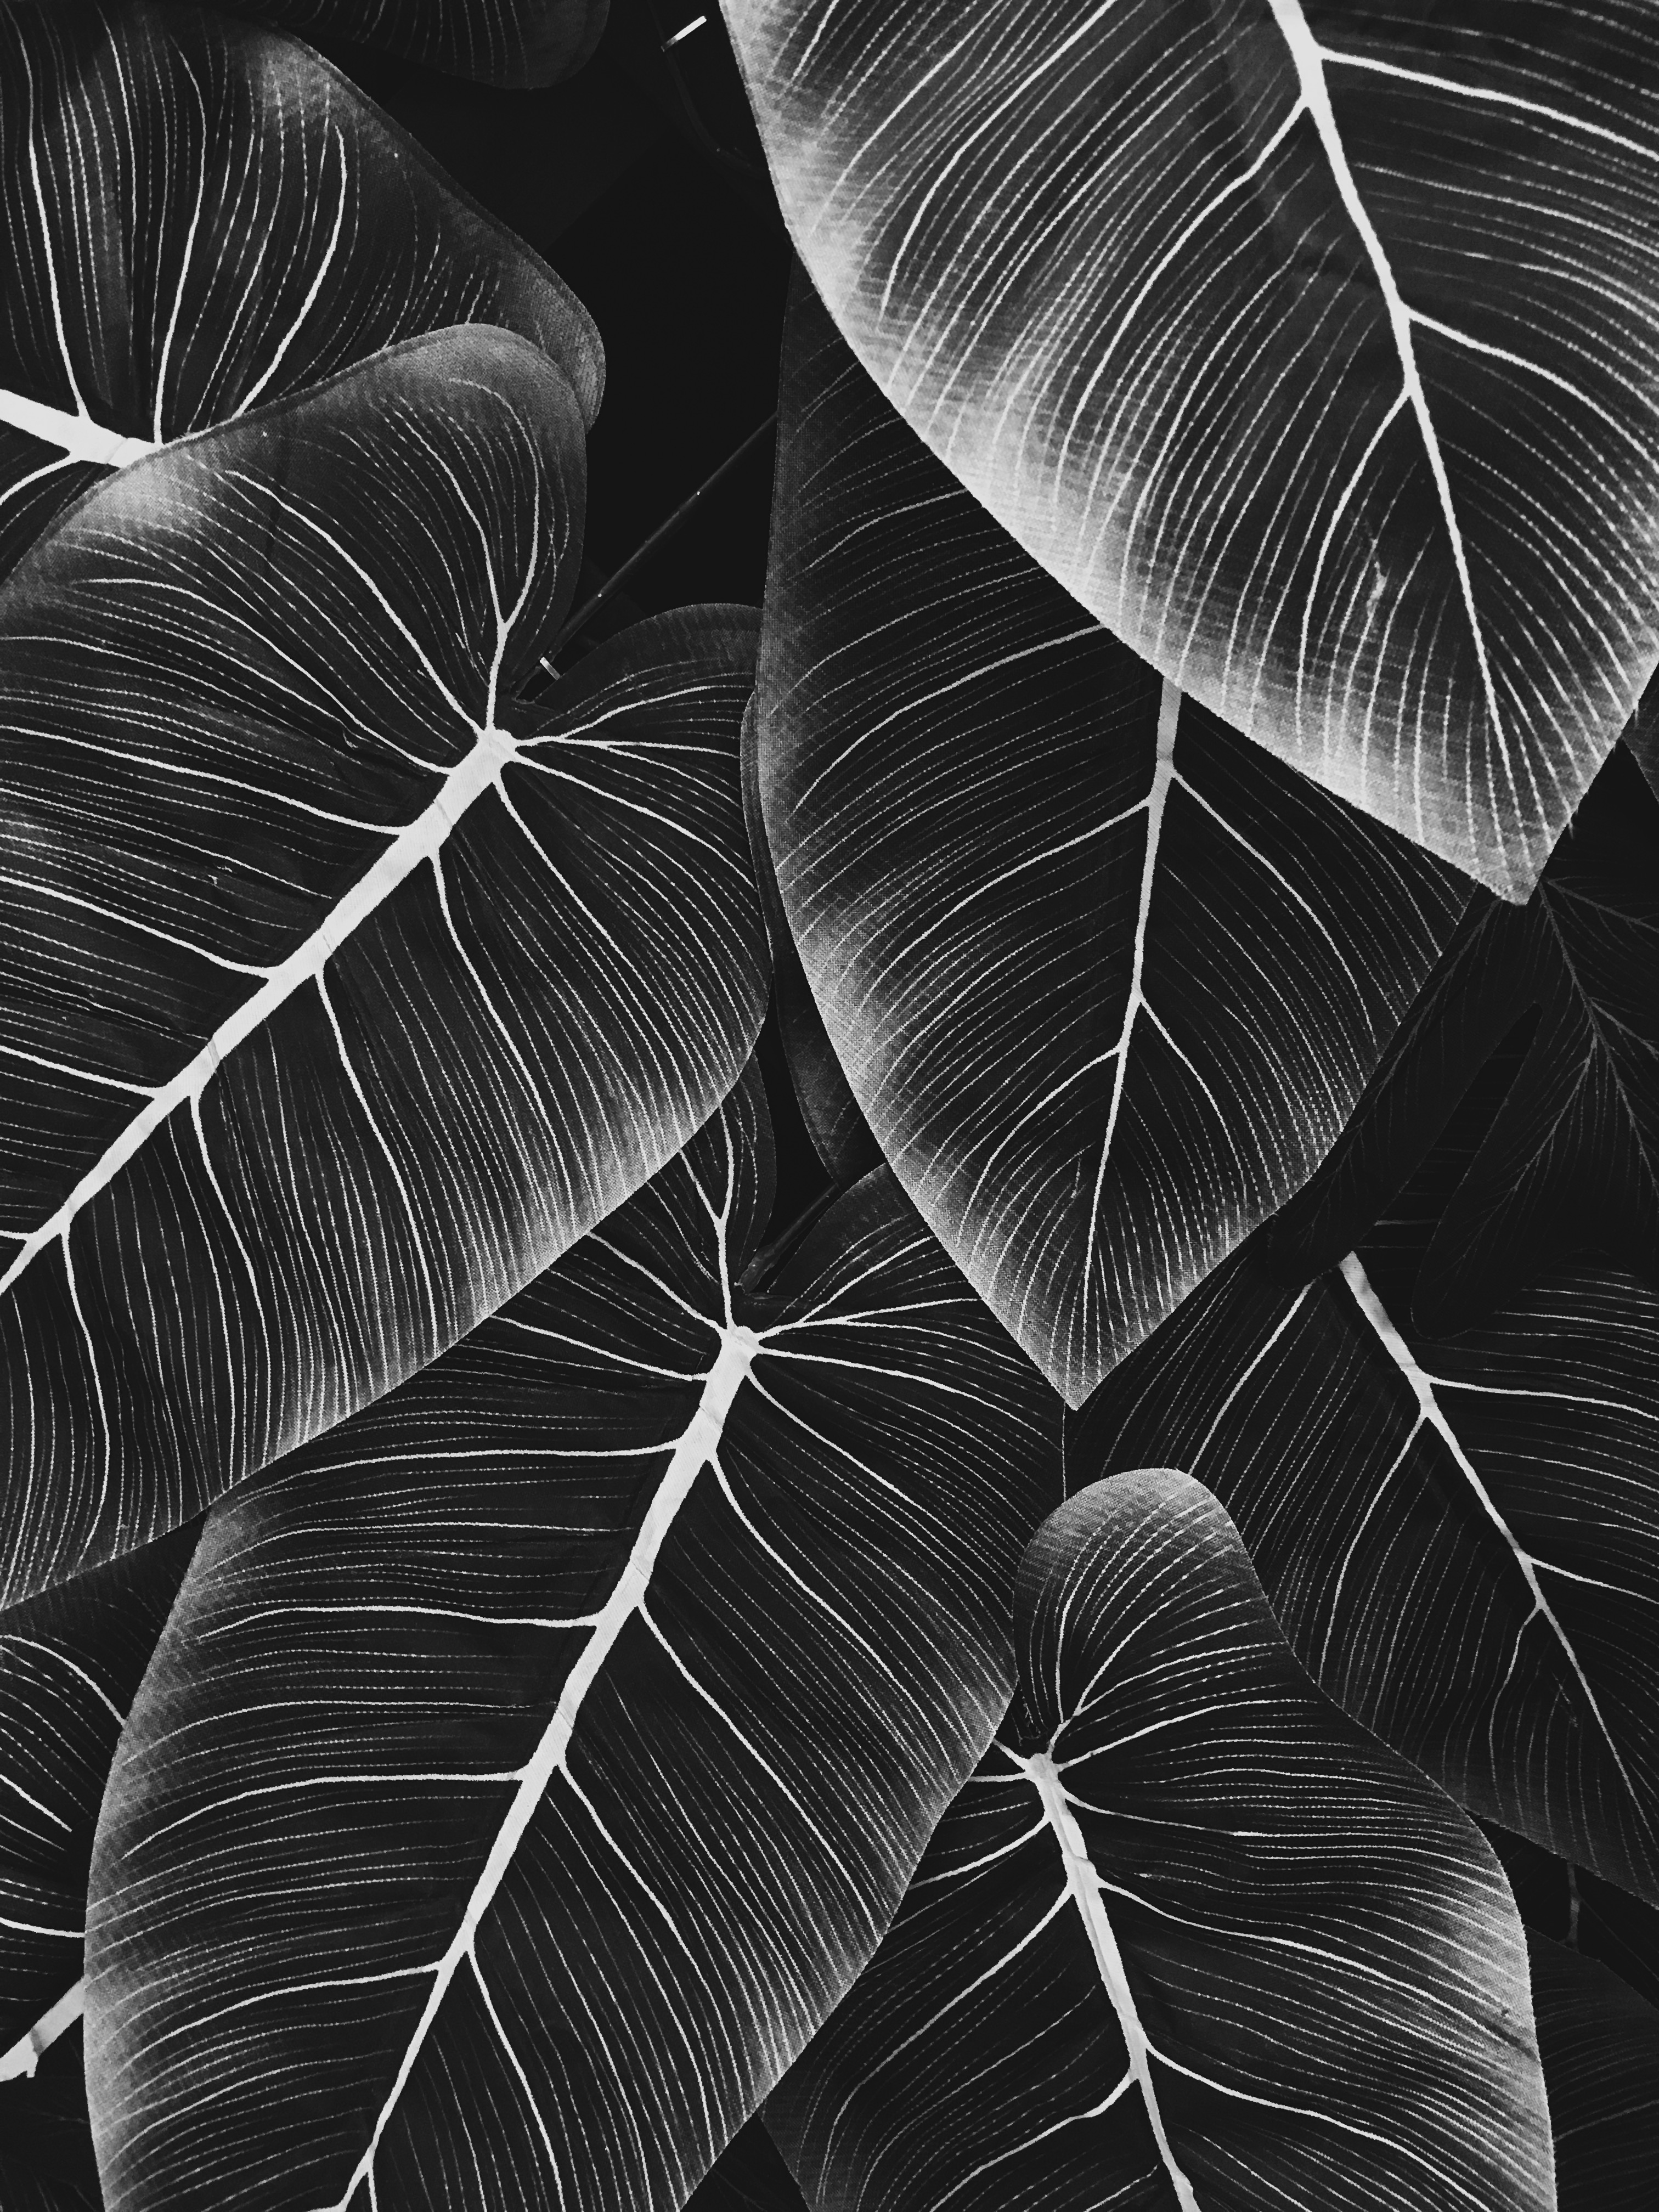 fd photo studio-los angeles-live clothes minded-fake leaves-black and white